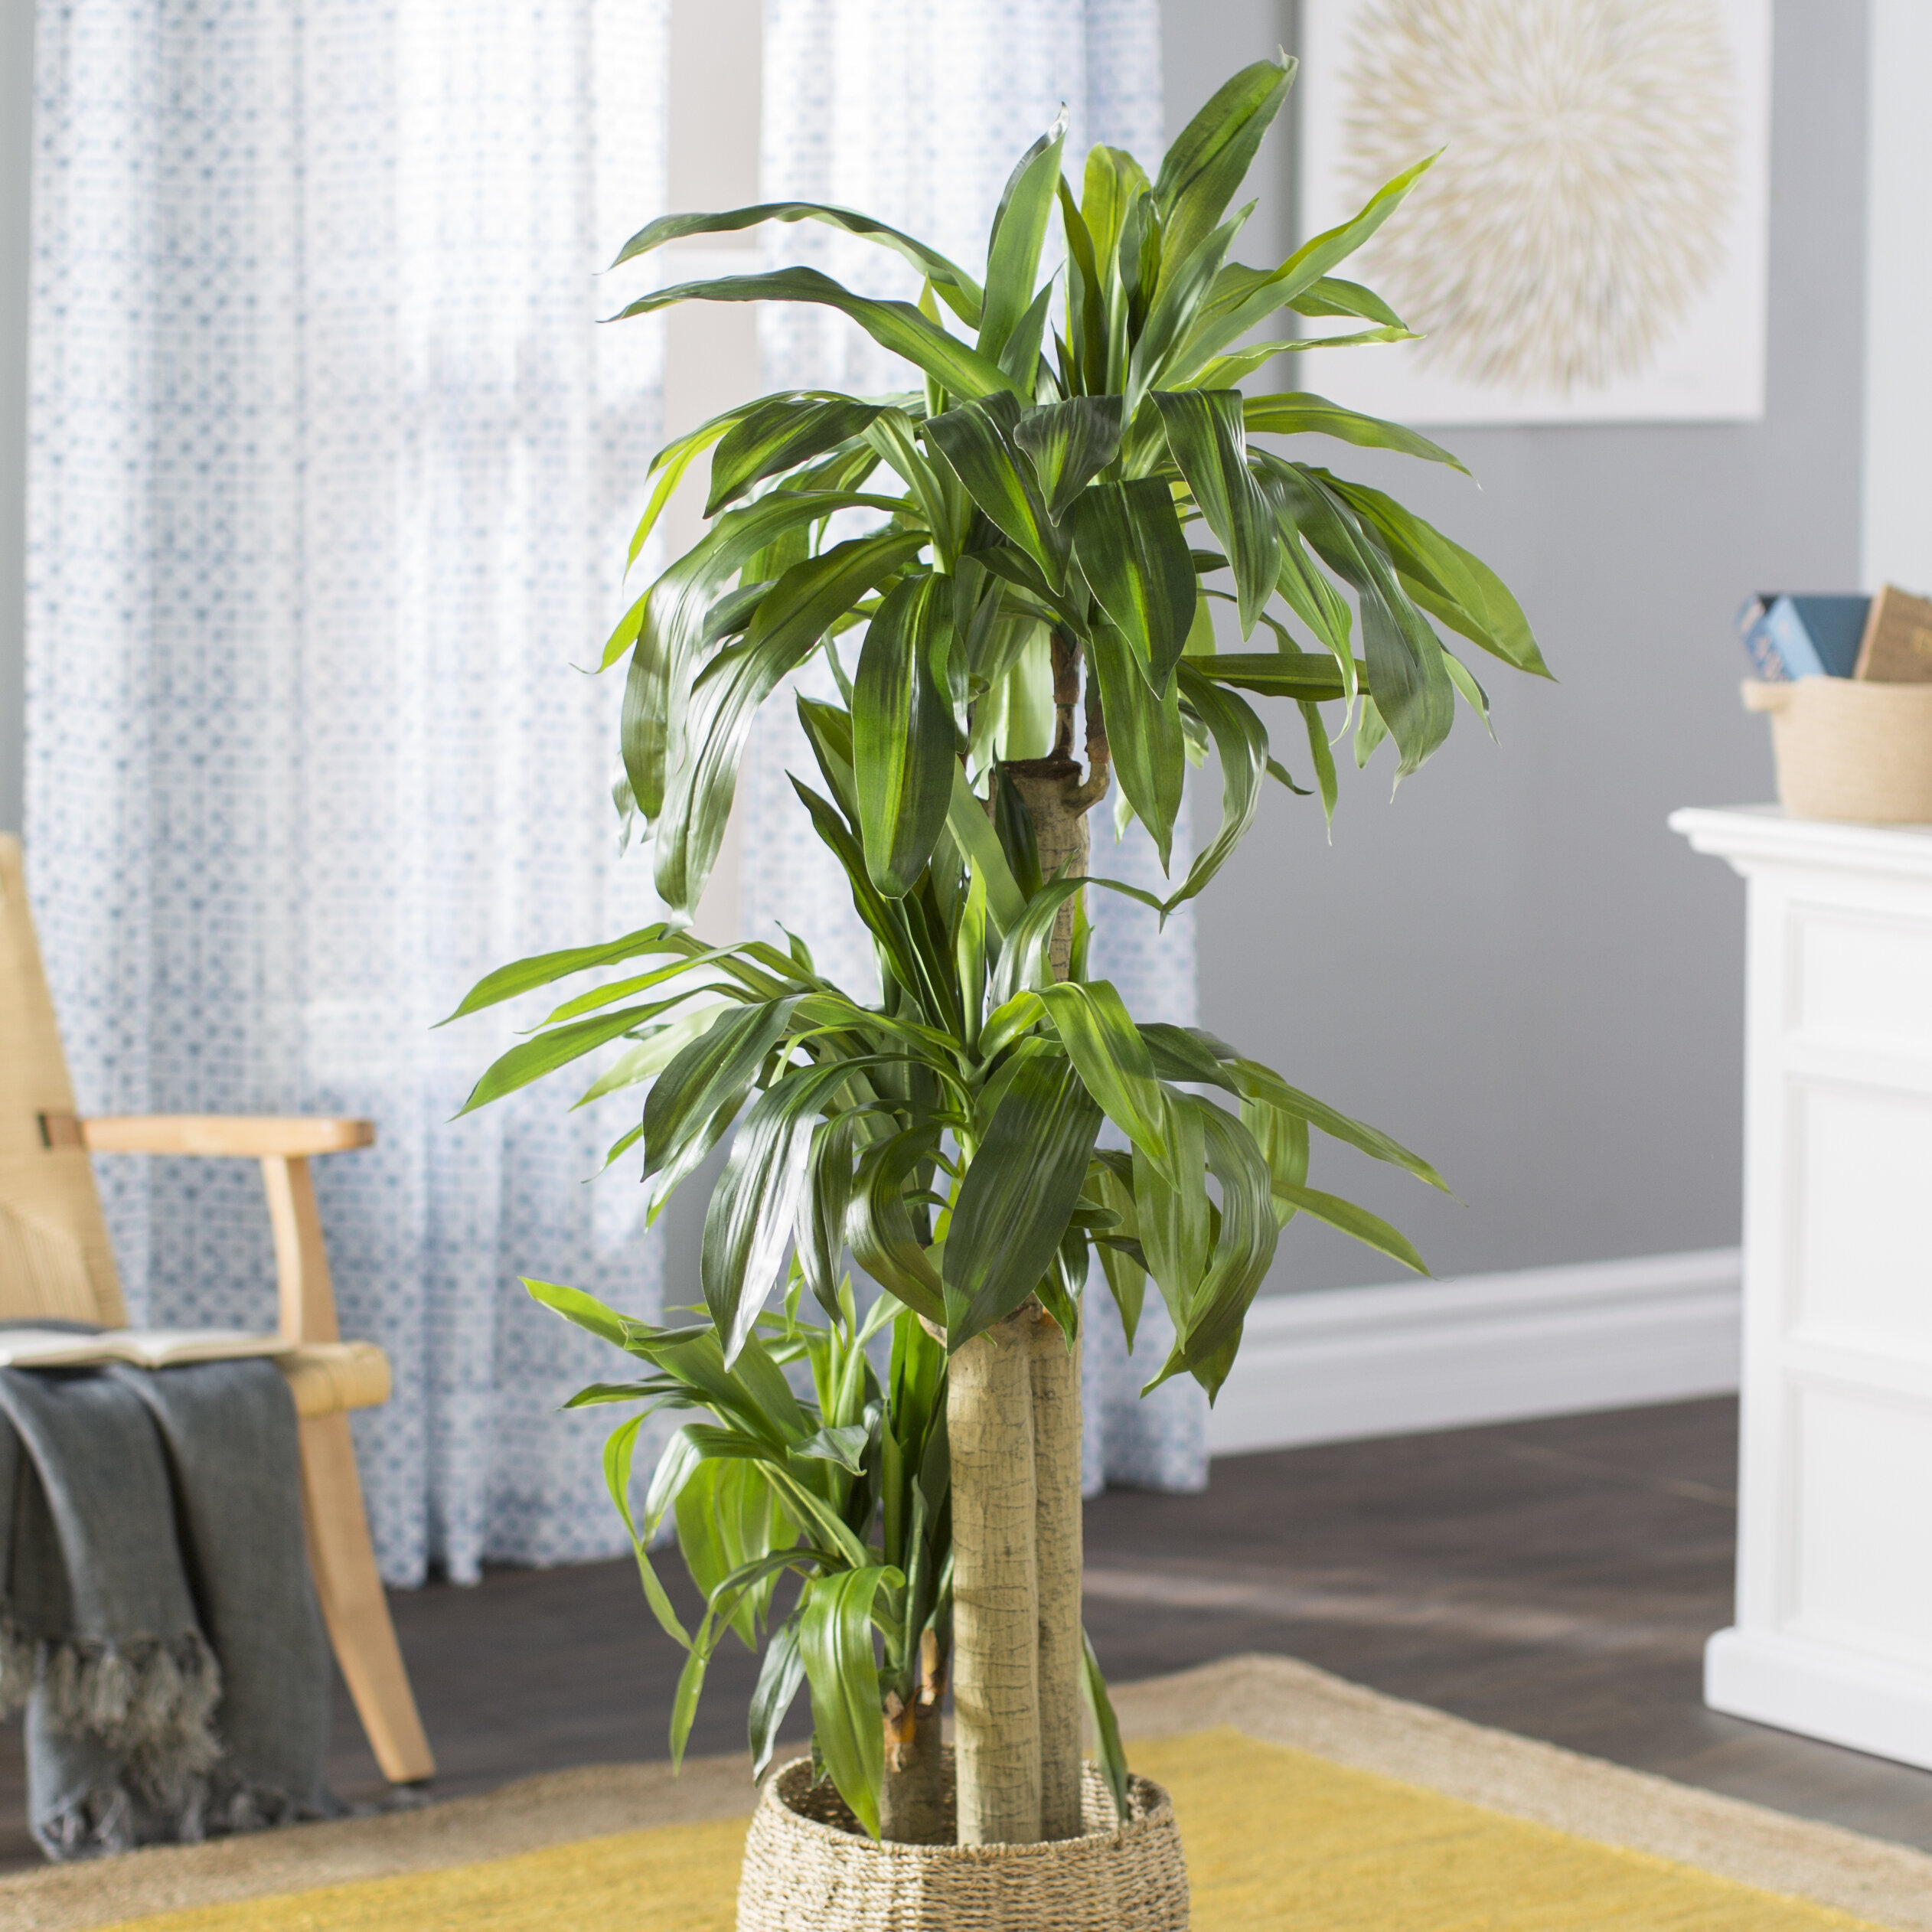 Beachcrest Home Corn Stalk Dracaena Silk Floor Plant In Pot Love Potted Decorative Plants Reviews Wayfair